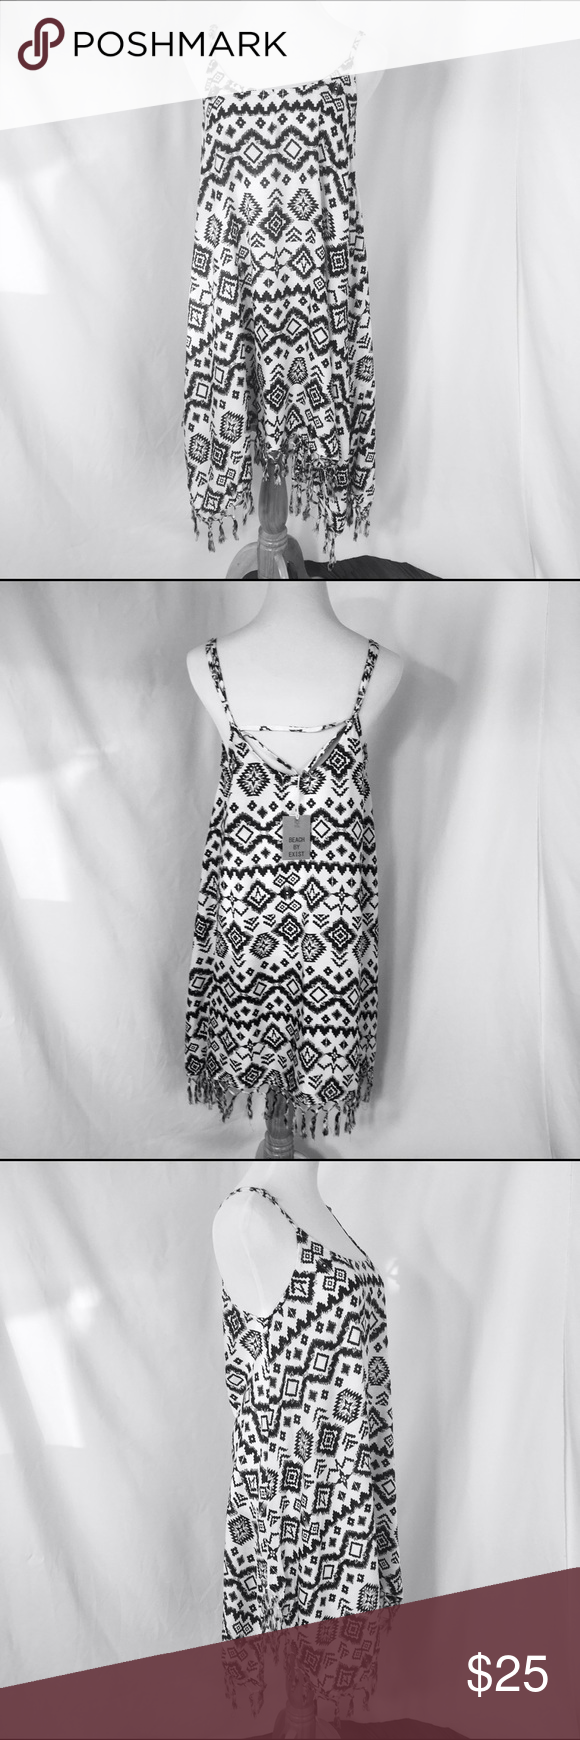 0b19de4fbc Aztec Print BoHo Cover Up Tunic Dress Aztec Print BoHo Cover Up Tunic Dress  with Fringe. Trendy Summer Essential. 100% Rayon Beach By Exist Other